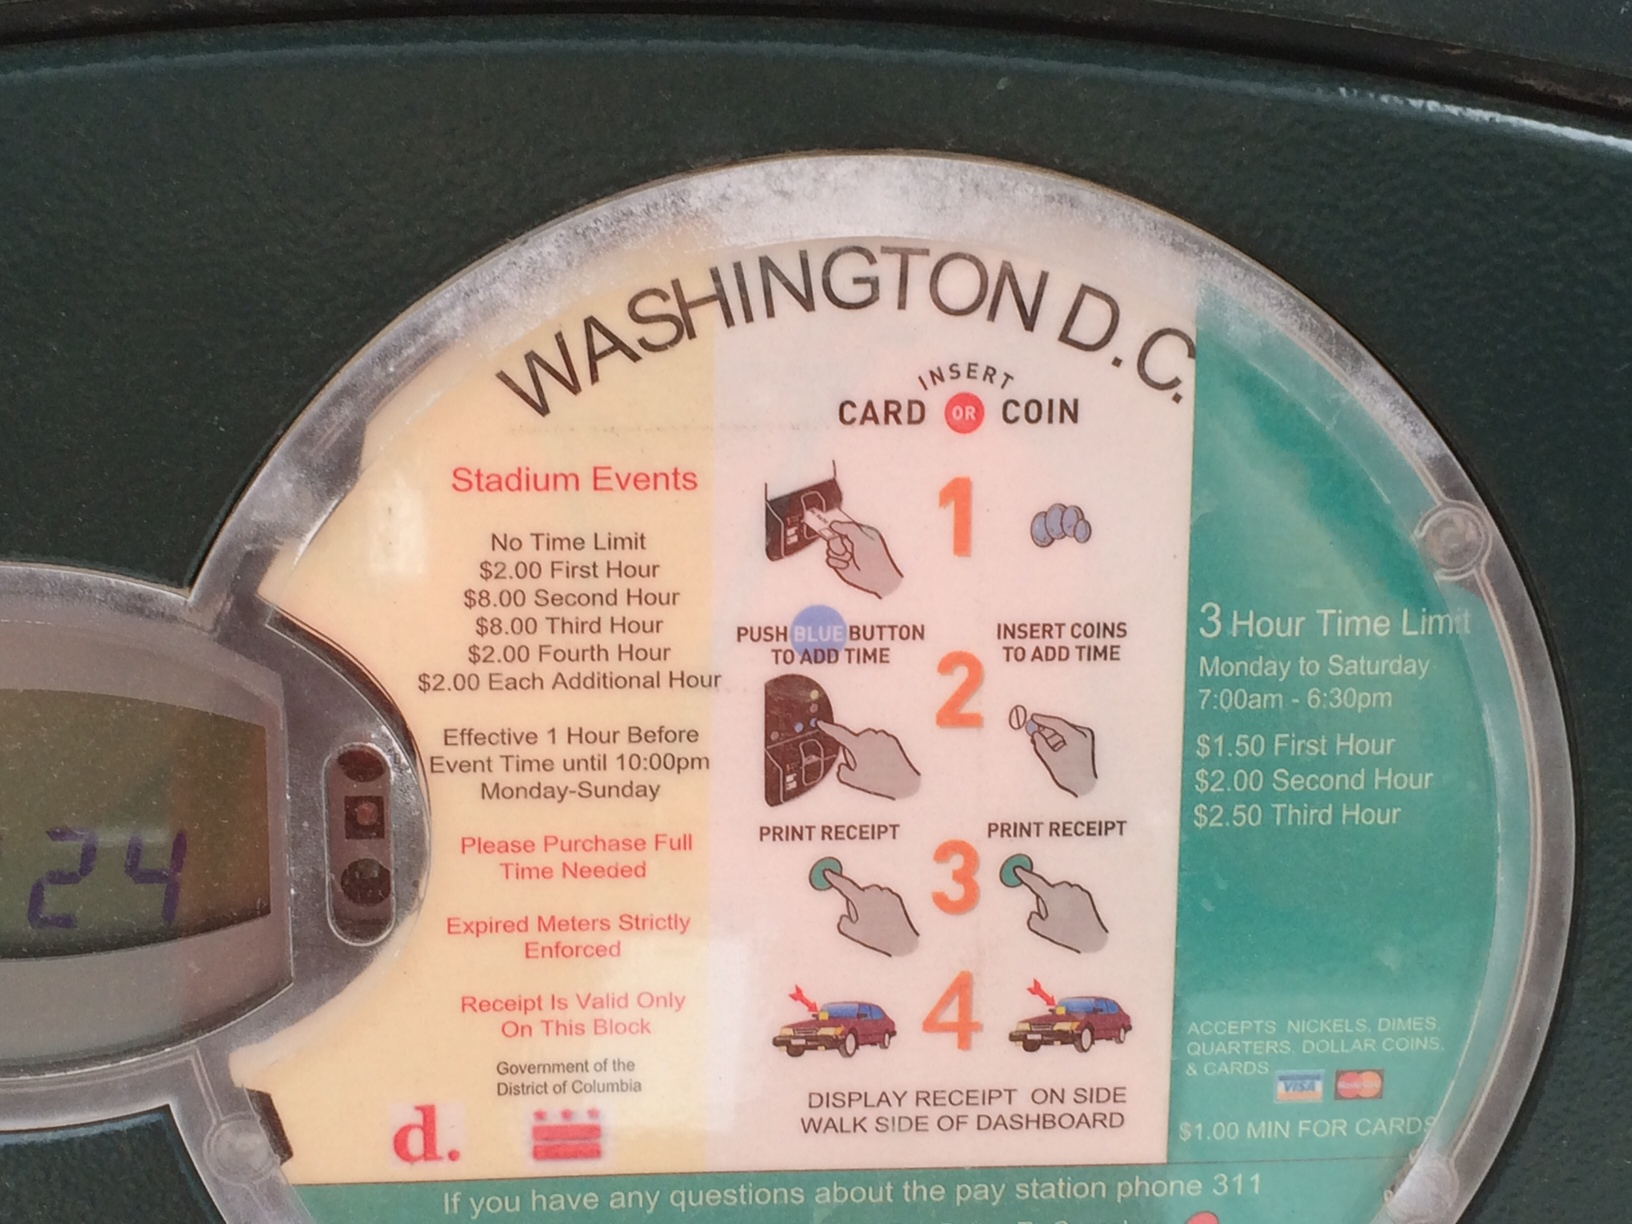 Feed the meter to watch the Nats on July 4